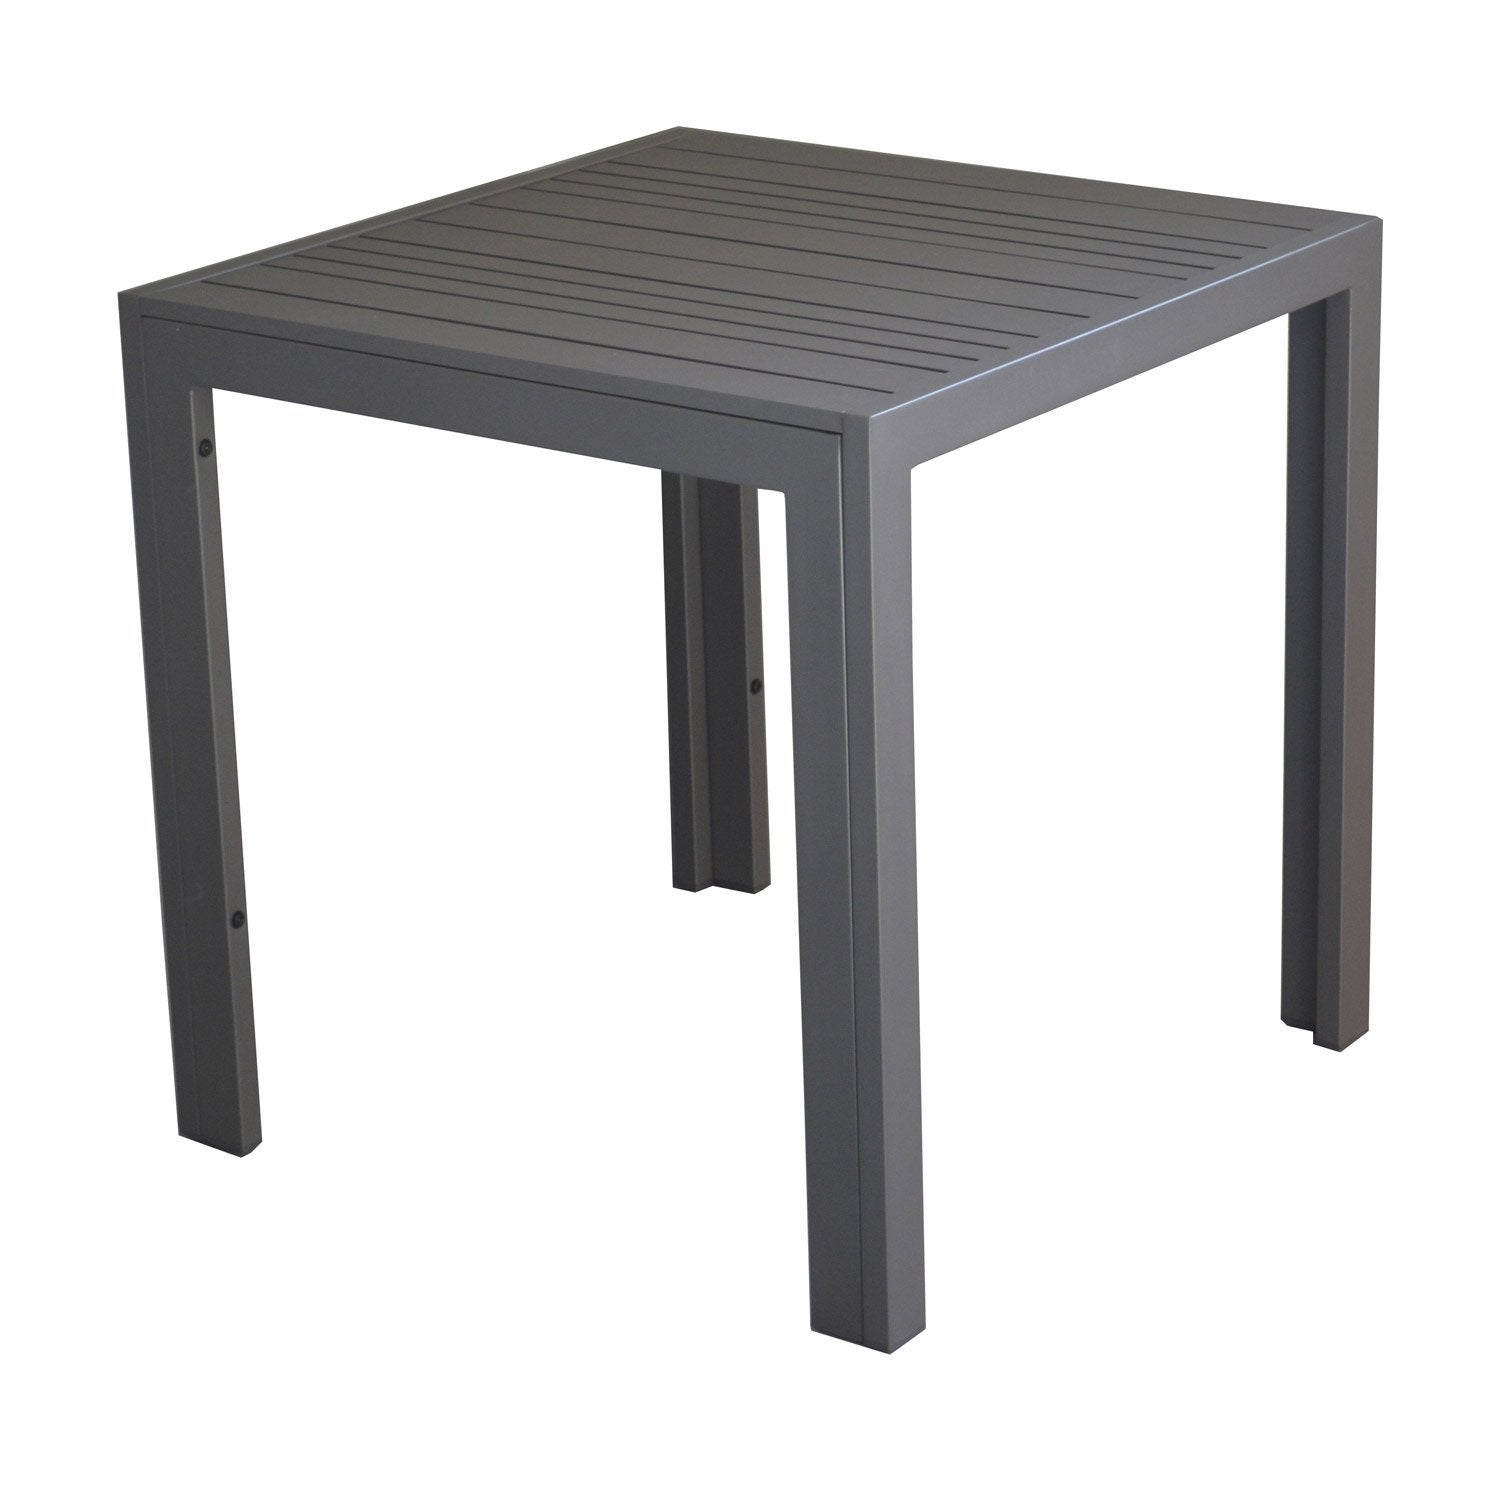 Table basse carr e gris 2 personnes leroy merlin for Leroy merlin table basse